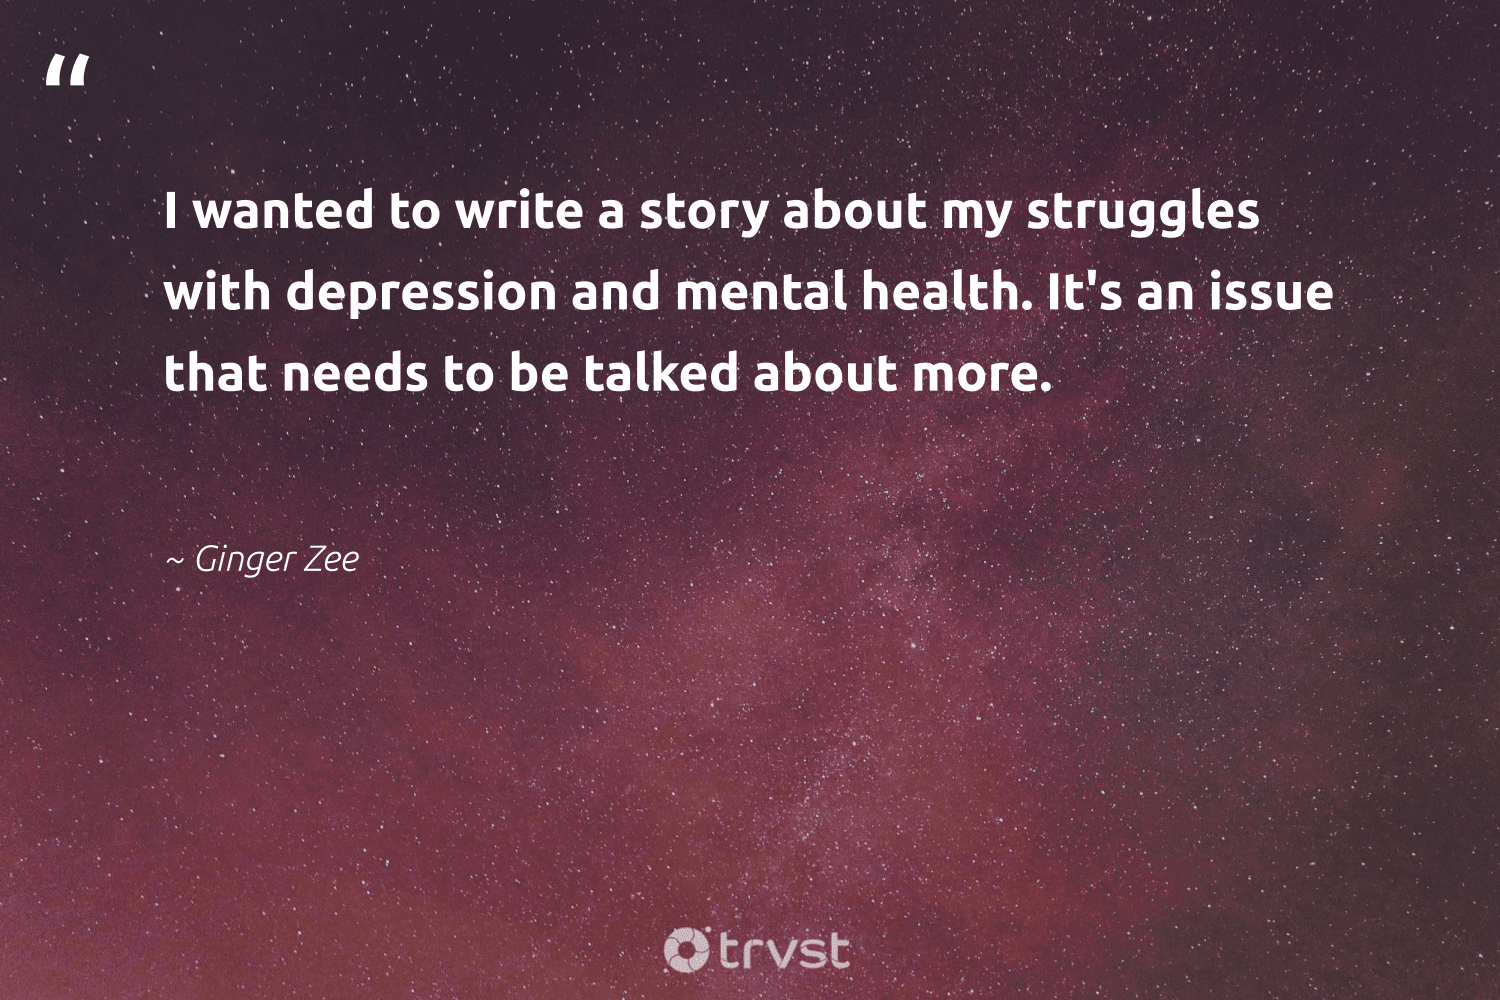 """I wanted to write a story about my struggles with depression and mental health. It's an issue that needs to be talked about more.""  - Ginger Zee #trvst #quotes #mentalhealth #health #depression #mentalhealthawareness #mentalhealthmatters #nevergiveup #begreat #socialchange #anxiety #stampoutthestigma"